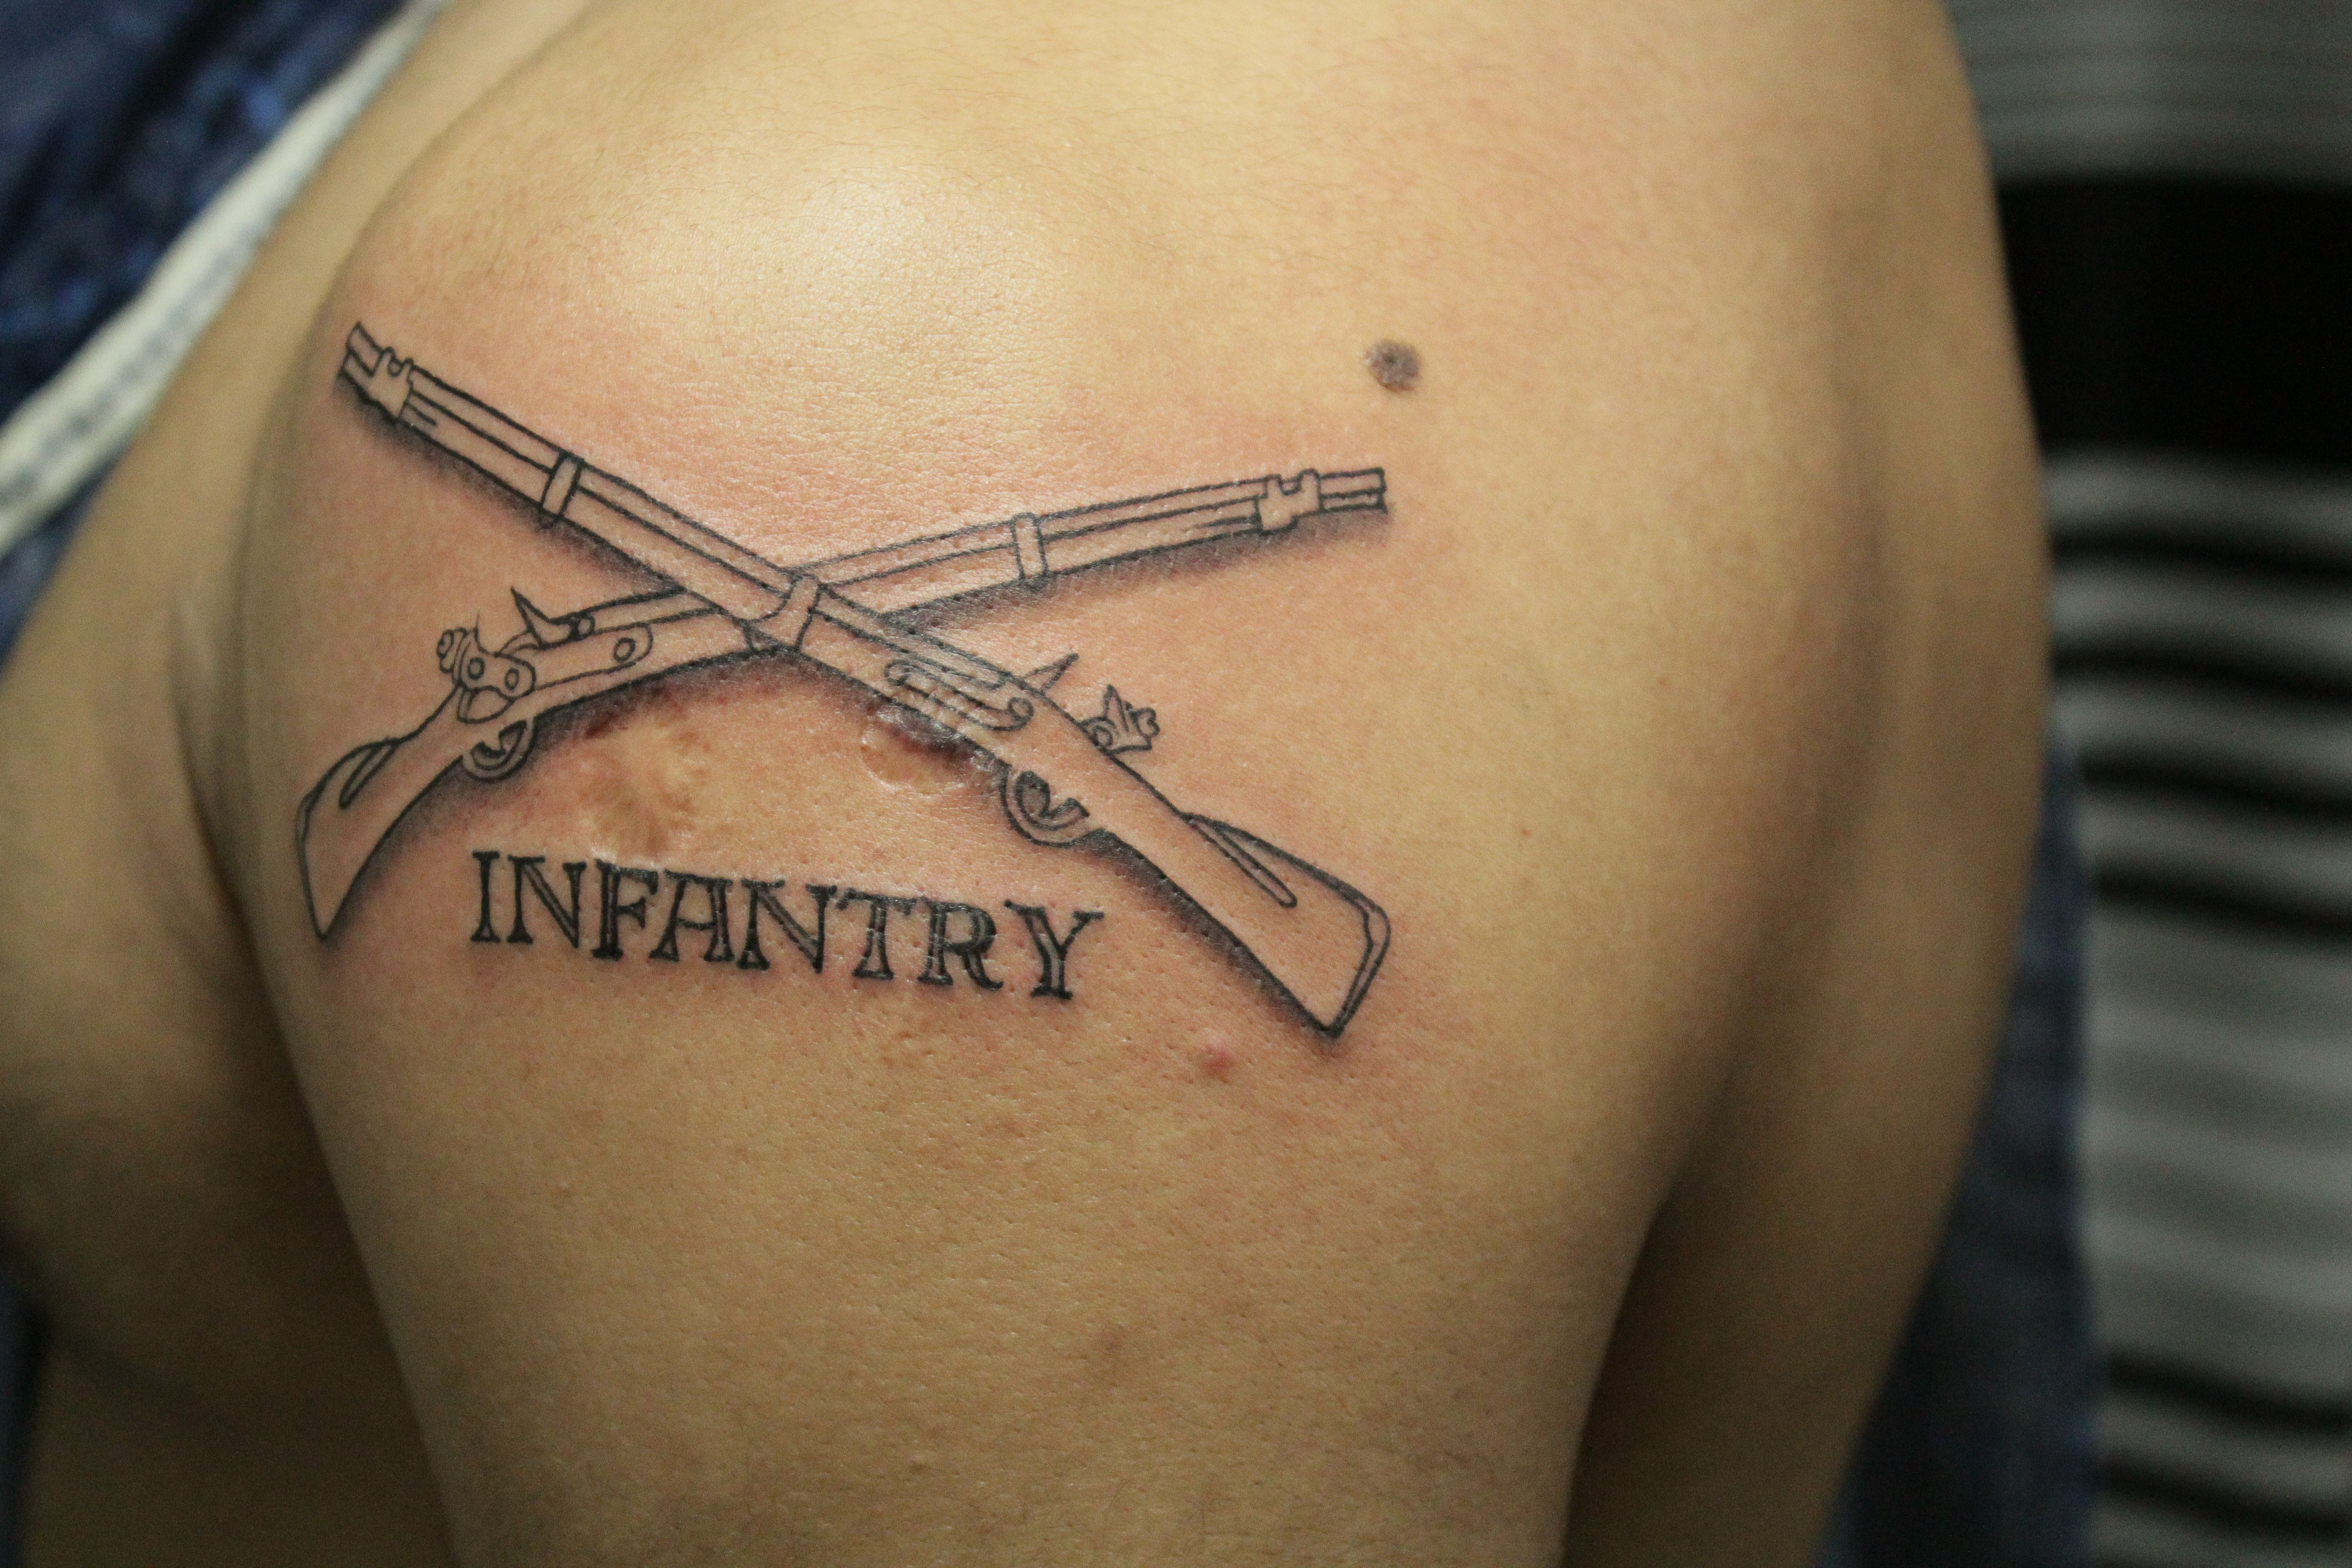 Infantry tattoo tattoos tattoos for guys military